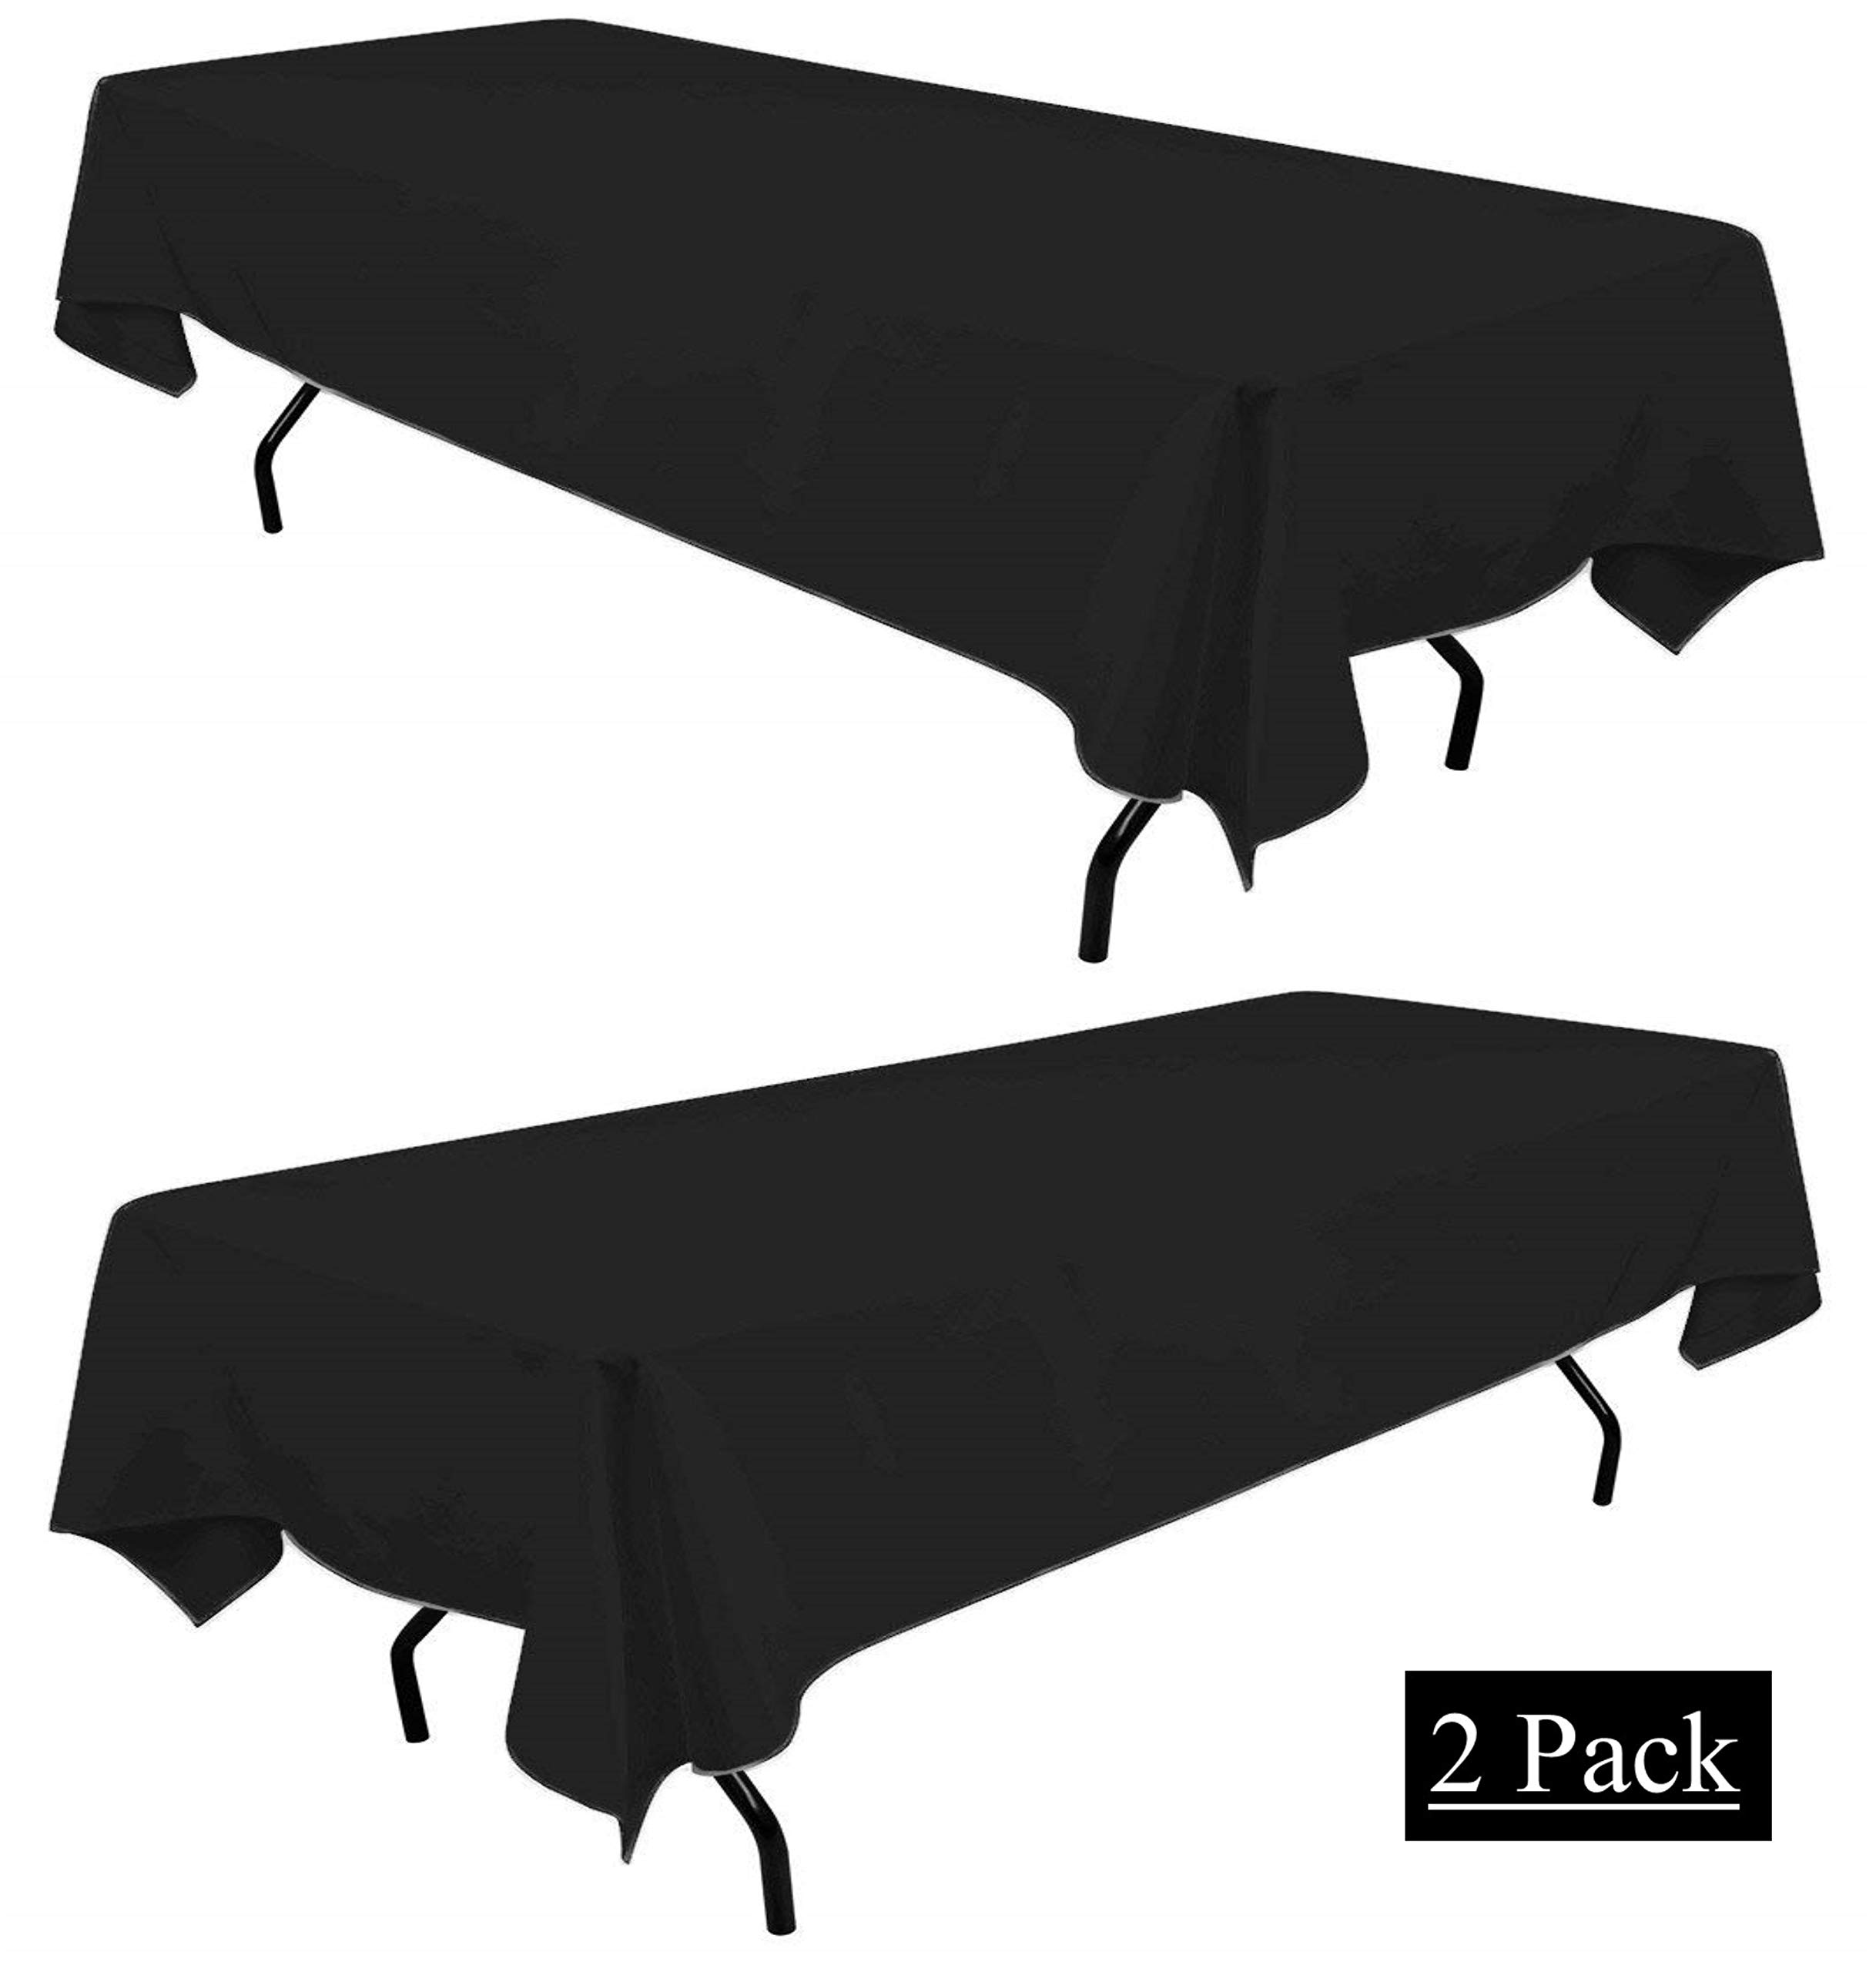 White Classic Black 60x102 Rectangle Tablecloth 6ft - Rectangular Table Cover for Party (60 x 102, 2 Pack) by White Classic